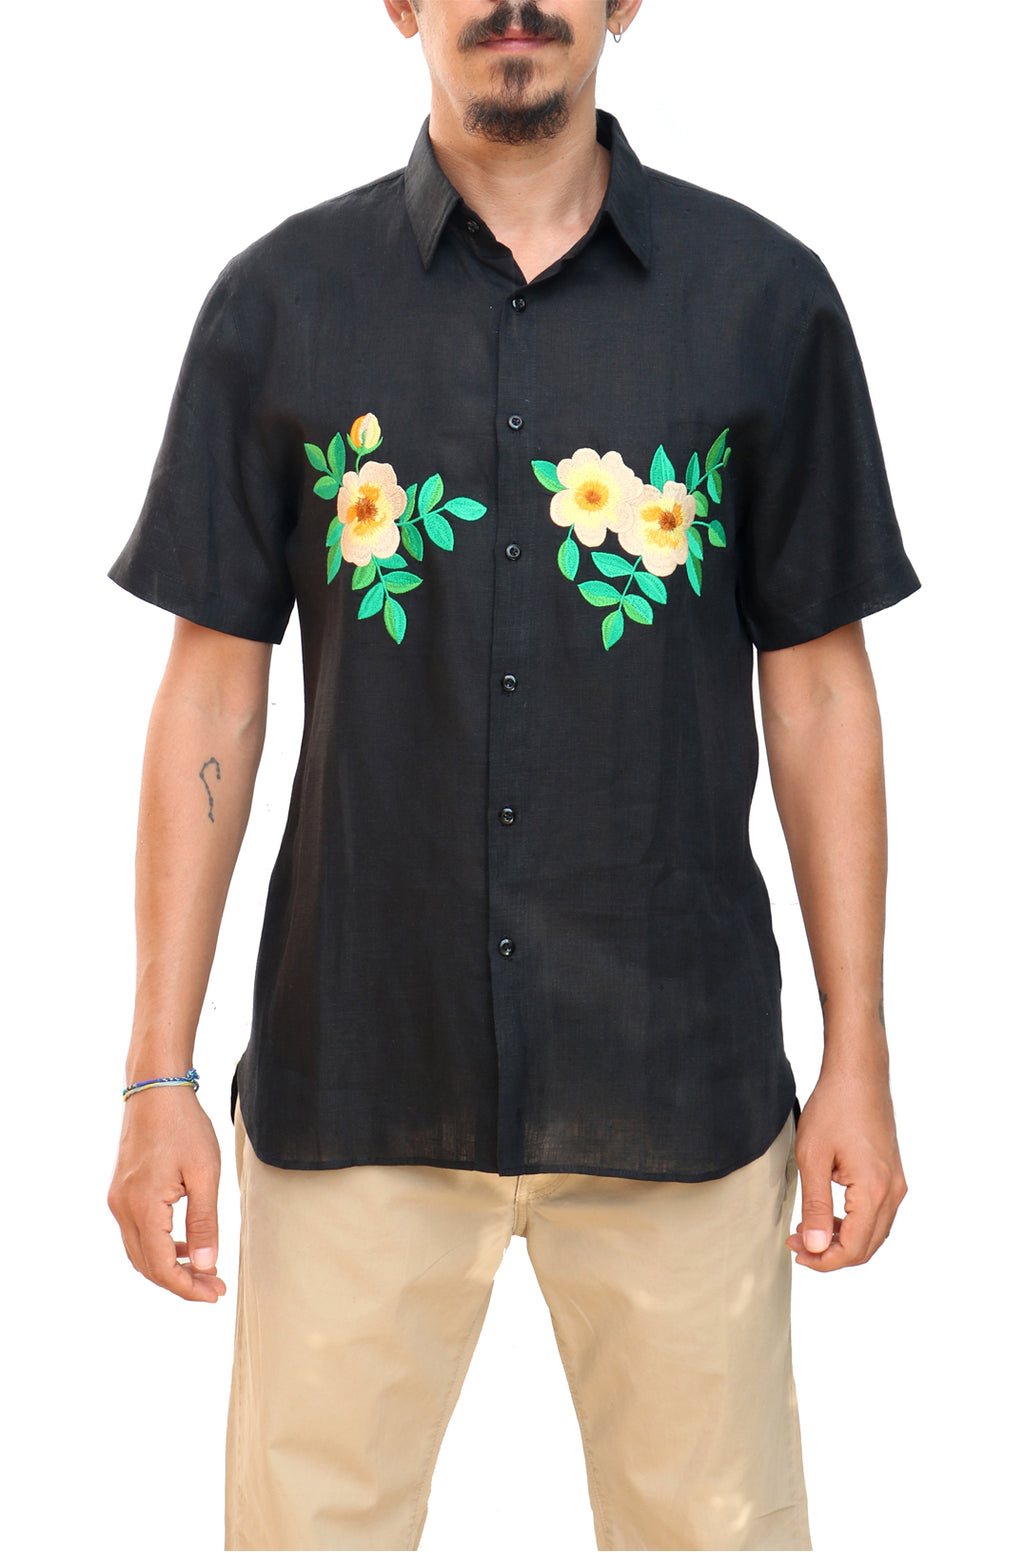 Fanm Mon ROCK Black Linen Men Shirt Flowers